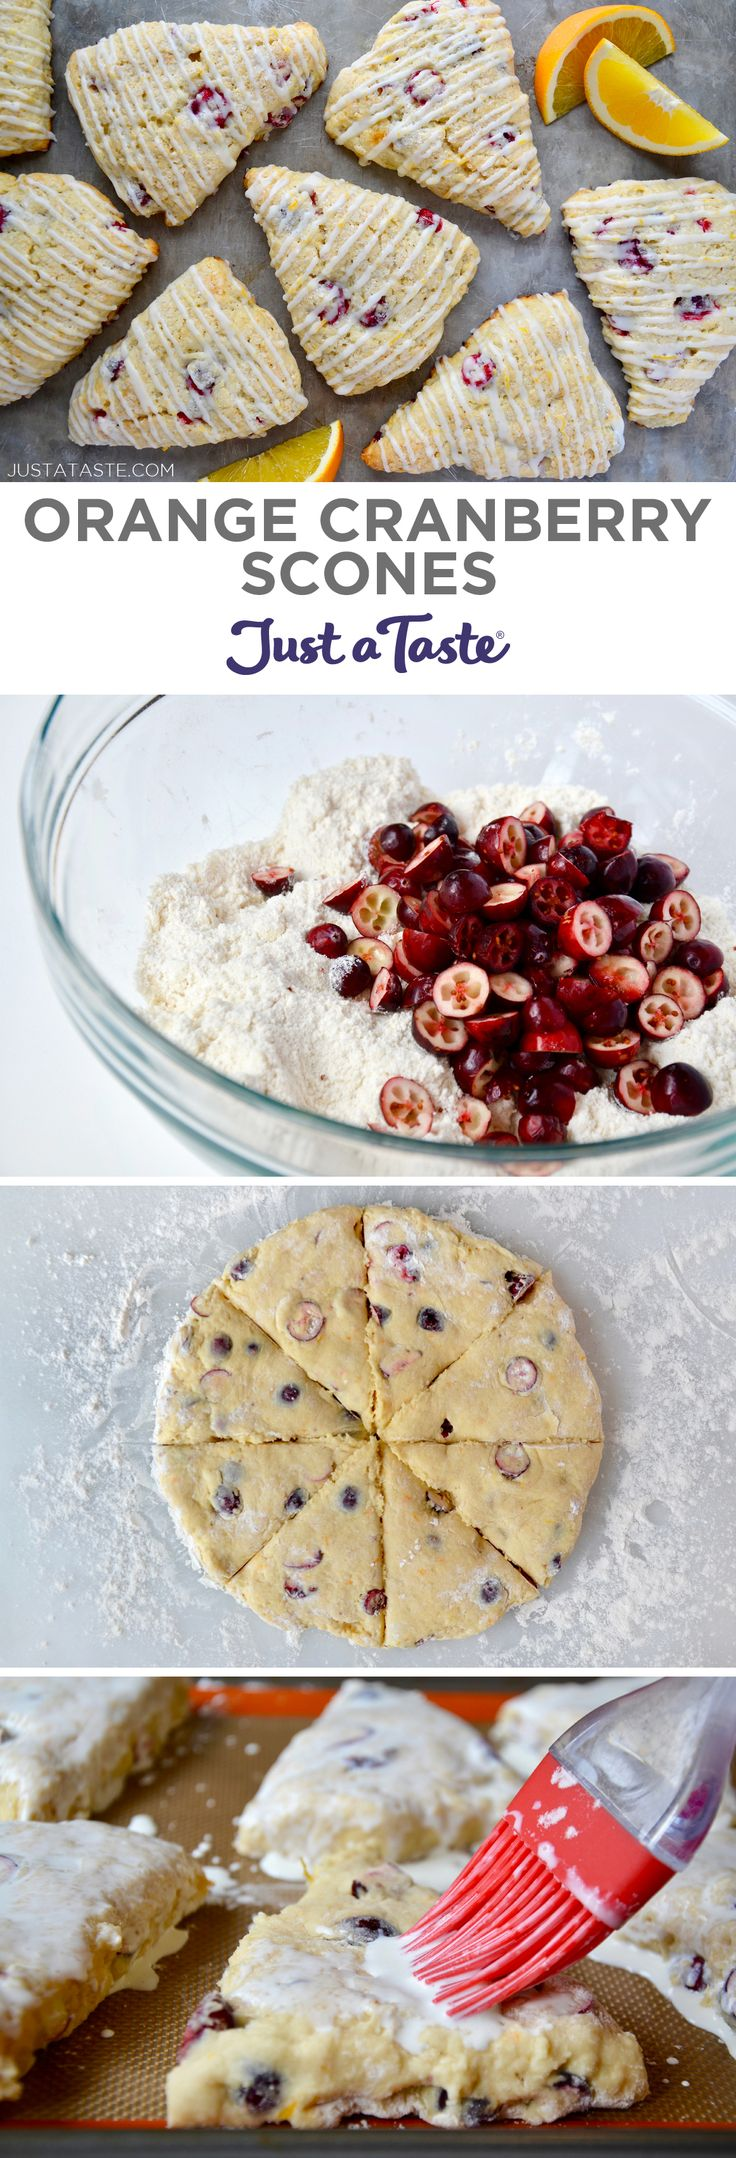 Add a seasonal spin to a breakfast favorite with light and tender Glazed Orange Cranberry Scones loaded with fresh fruit. | recipe from justataste.com #recipes #breakfast #brunch #baking